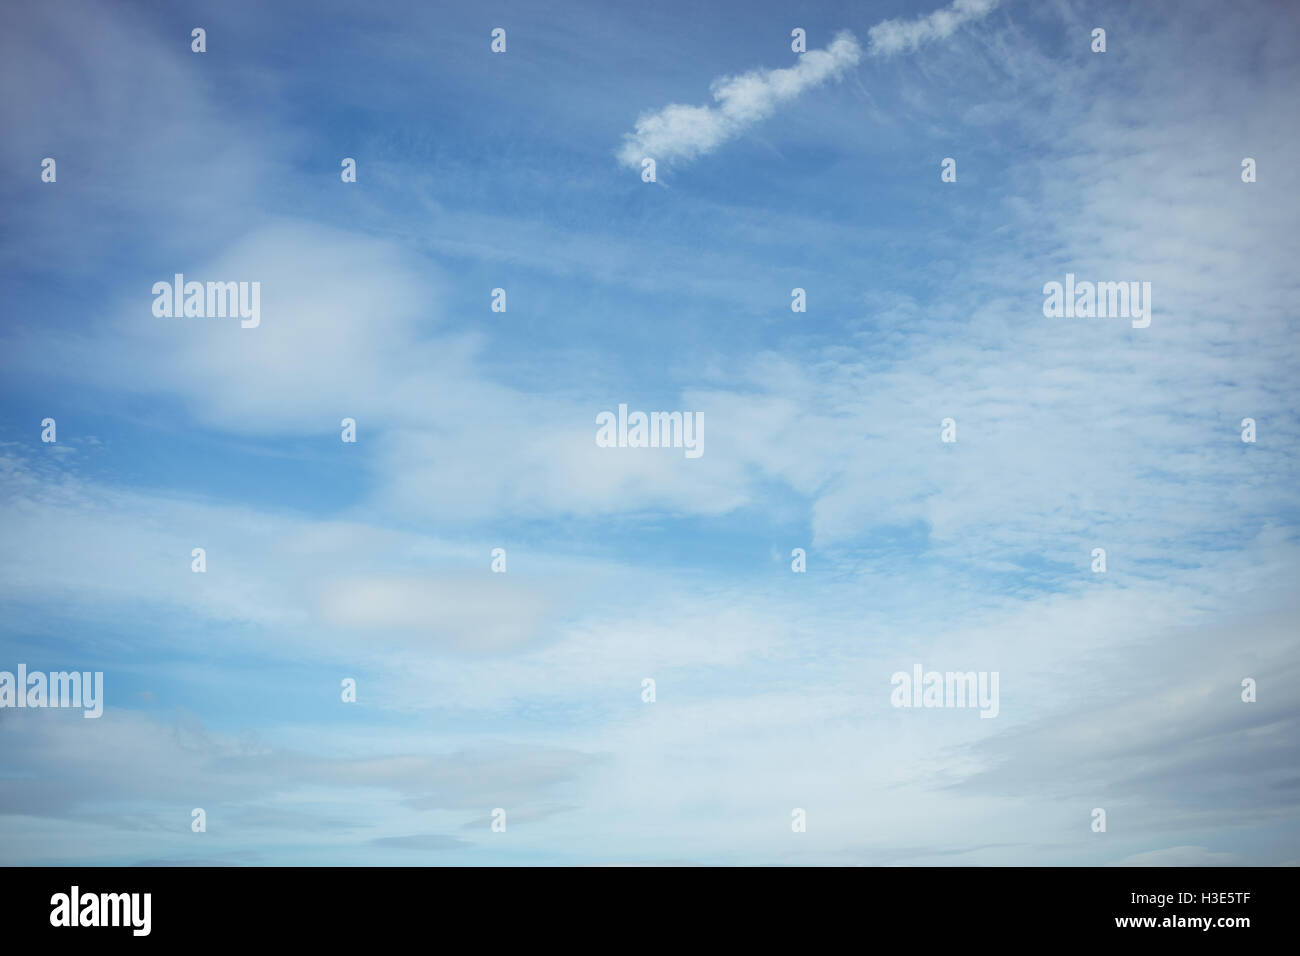 View of cloudy sky - Stock Image